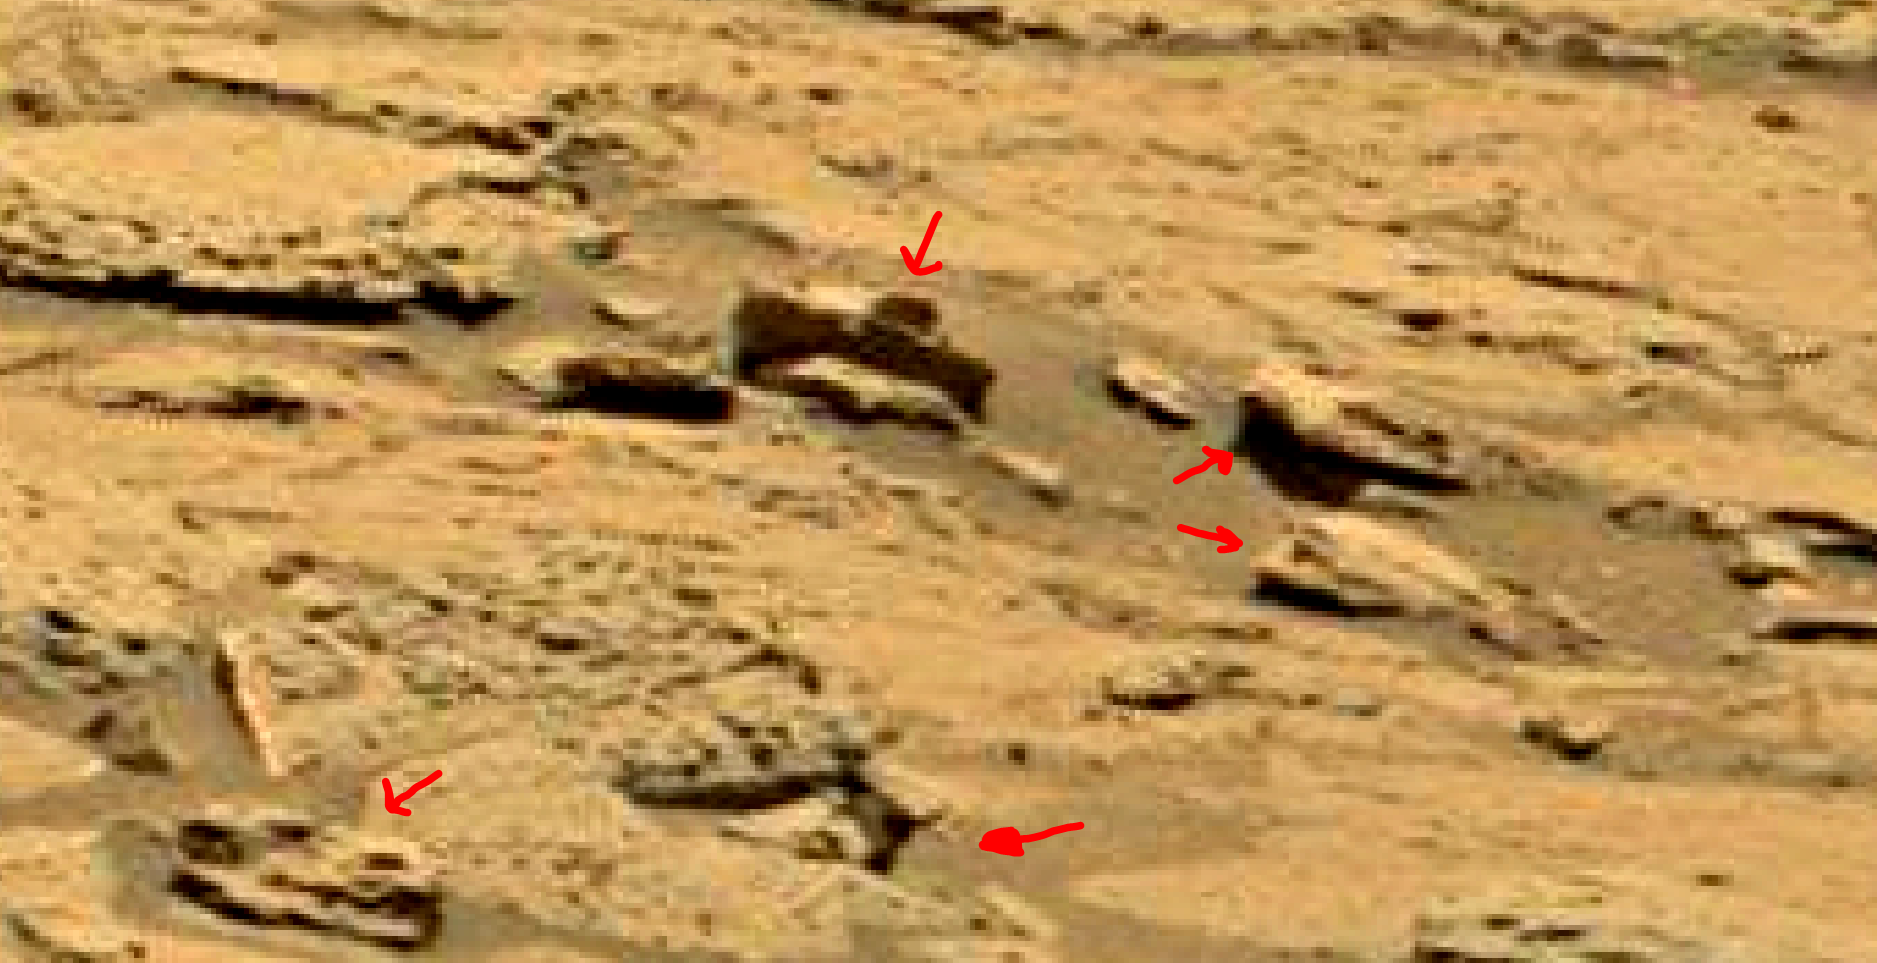 mars sol 1353 anomaly-artifacts 56 was life on mars